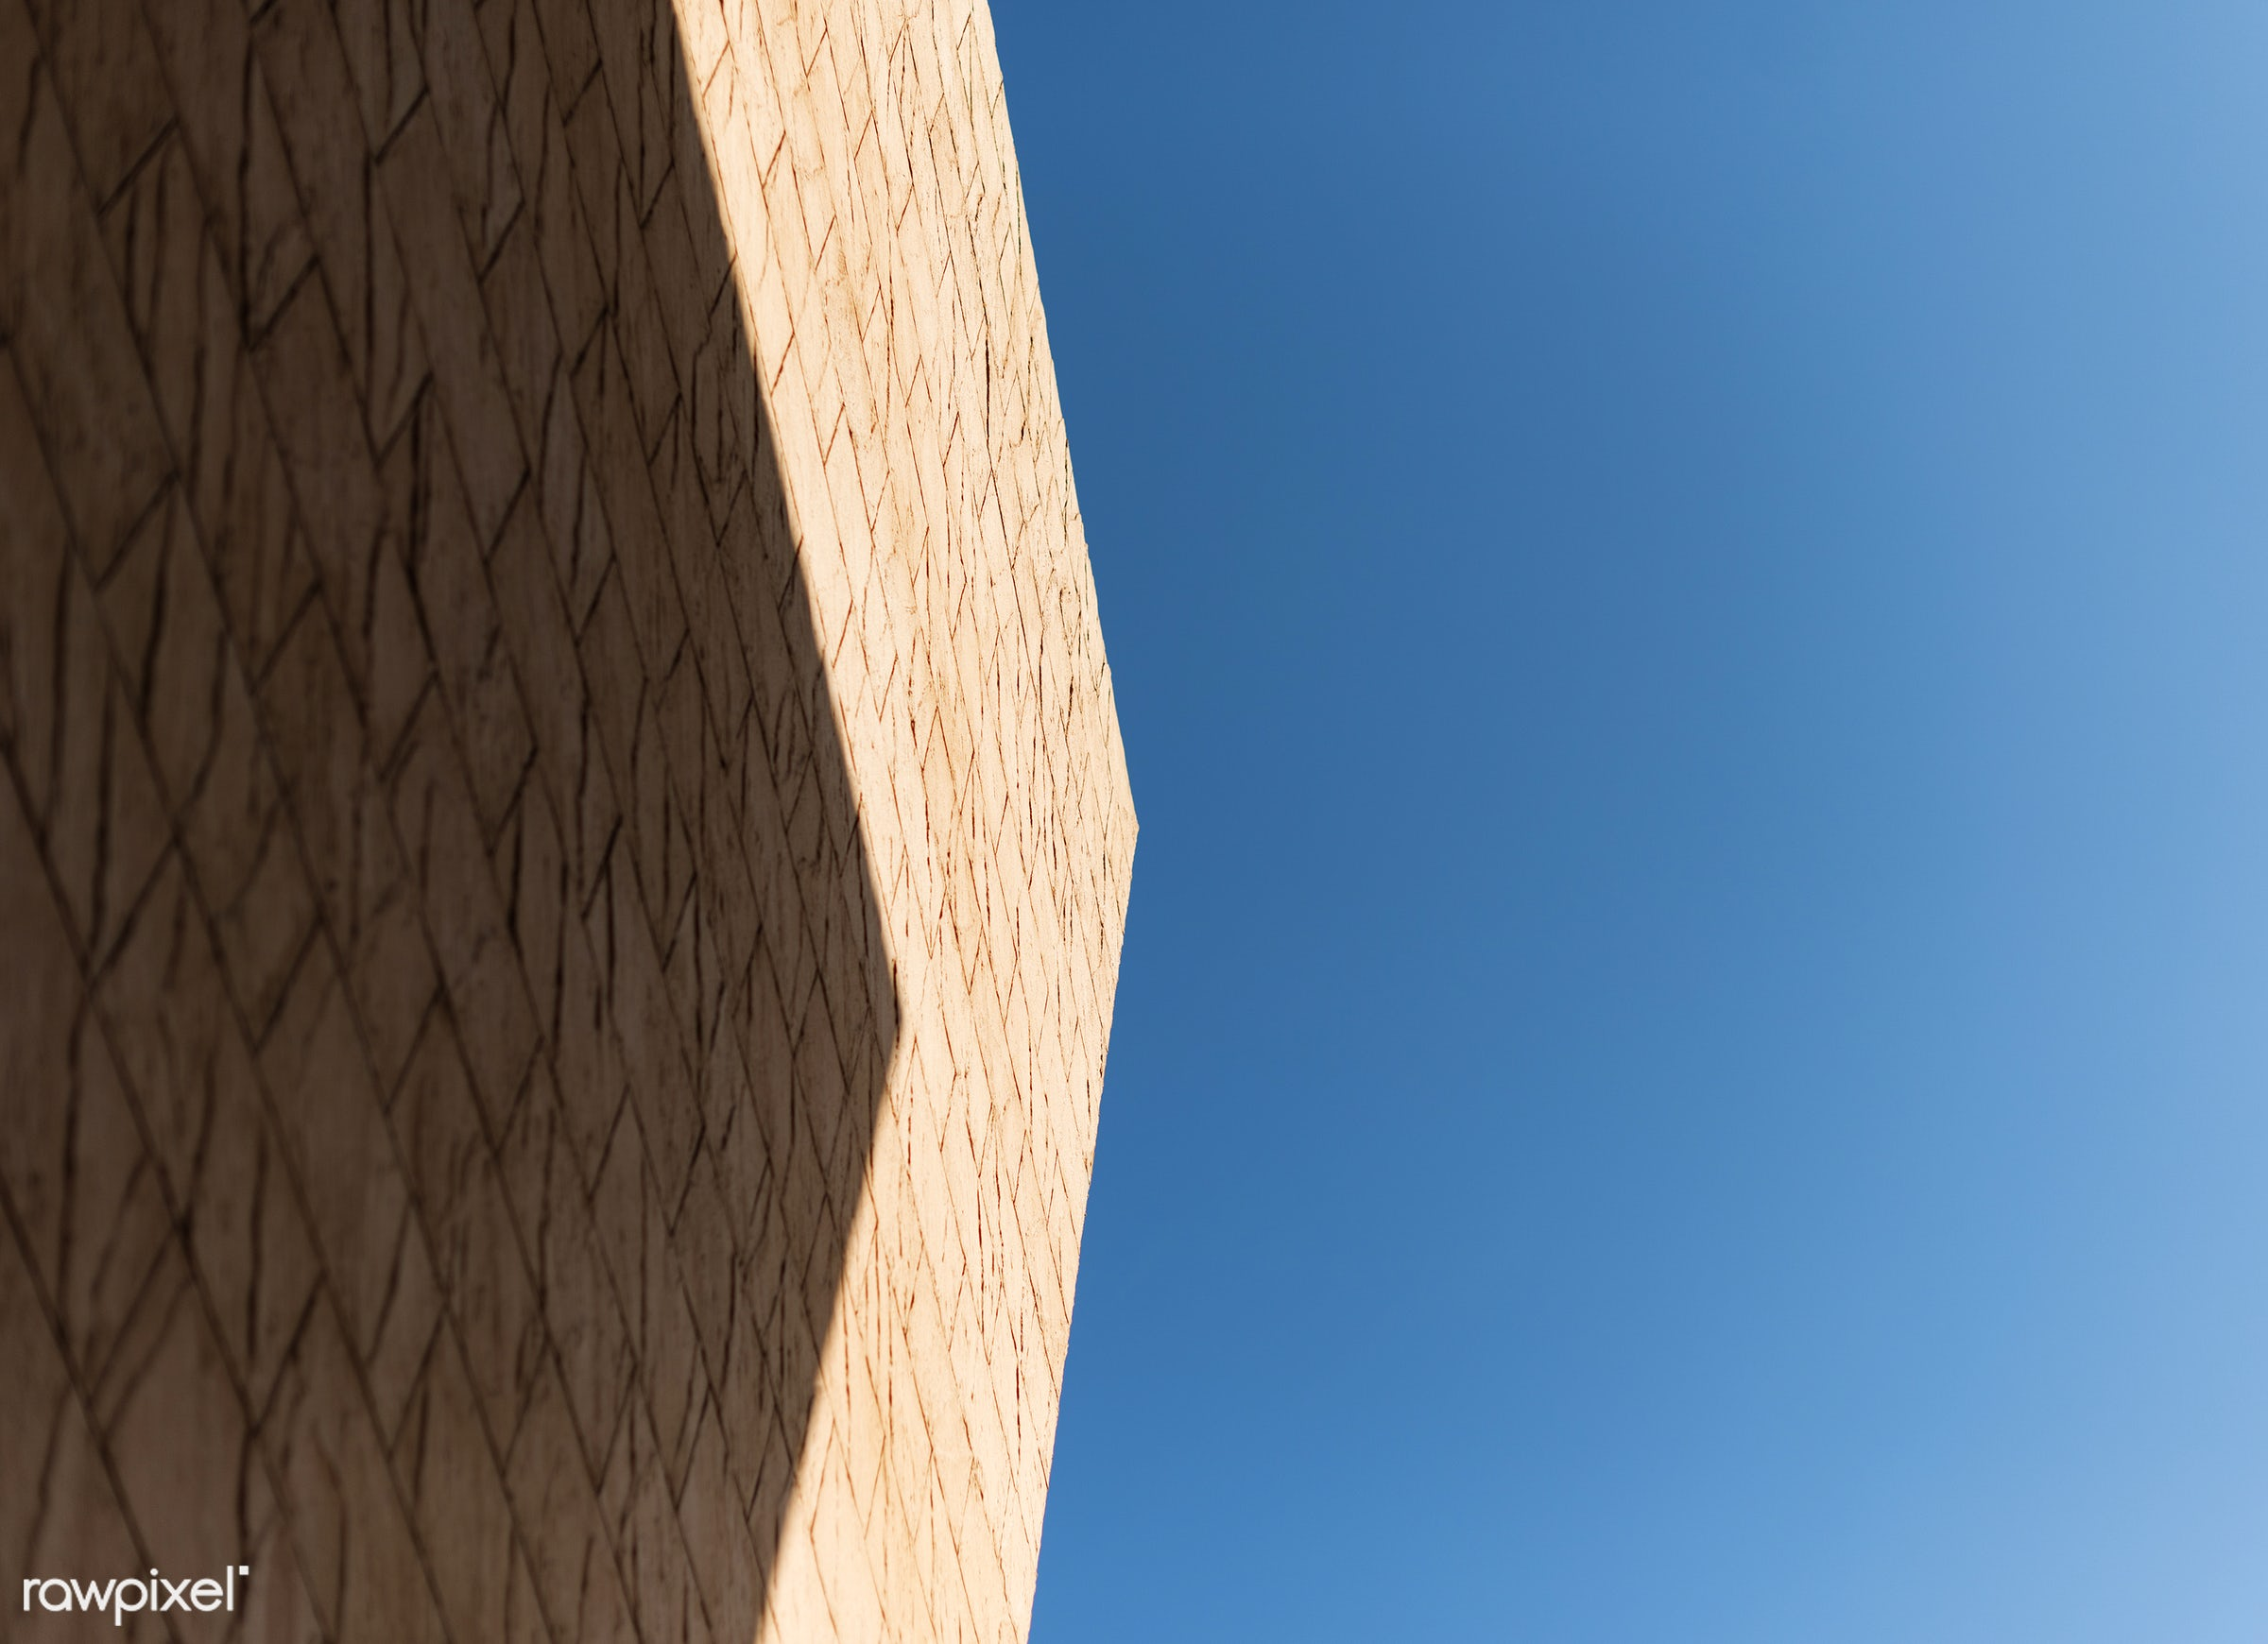 abstract, nobody, building, bright, brown wall, architecture, sky, blue, bricks wall, shadow, outdoors, background, view,...